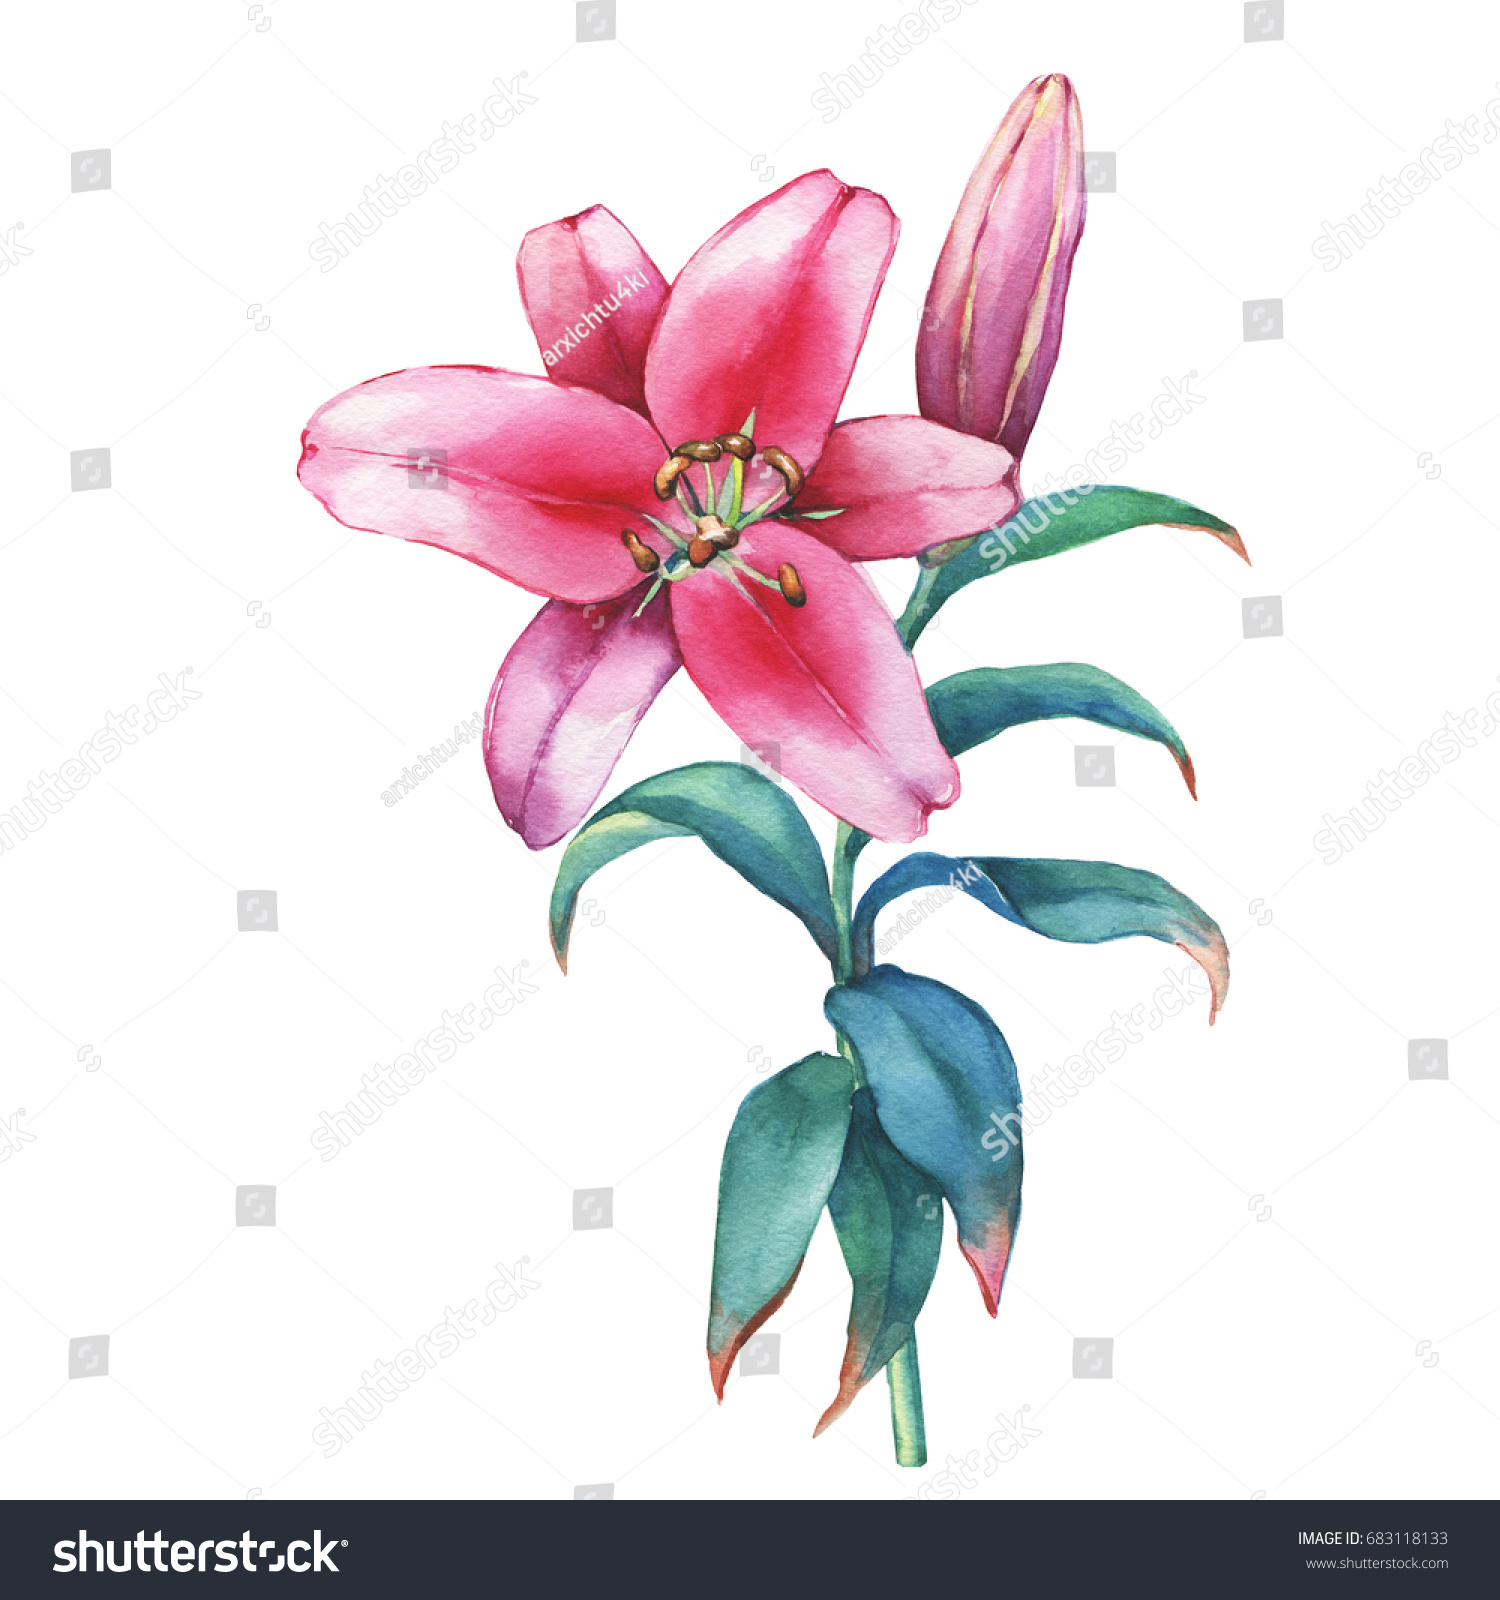 Branch closeup pink lilies flower watercolor stock illustration a branch close up of a pink lilies flower watercolor hand drawn painting illustration izmirmasajfo